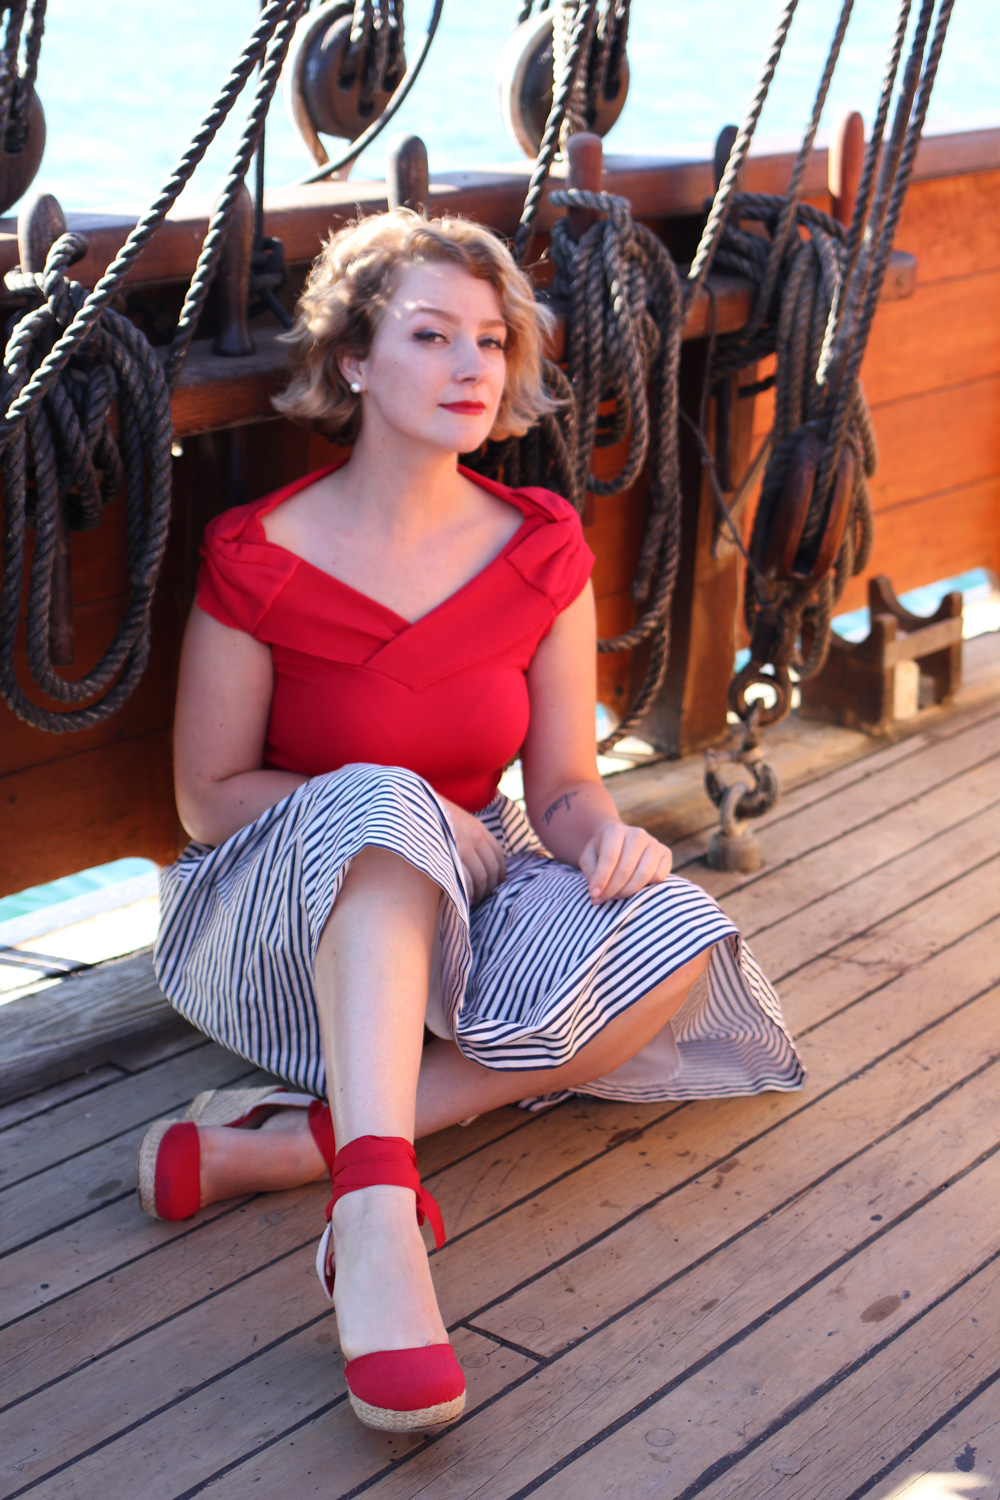 @findingfemme wears review Australia red knit top with Review striped skirt and lace up red wedges on the tall ship Enterprize.